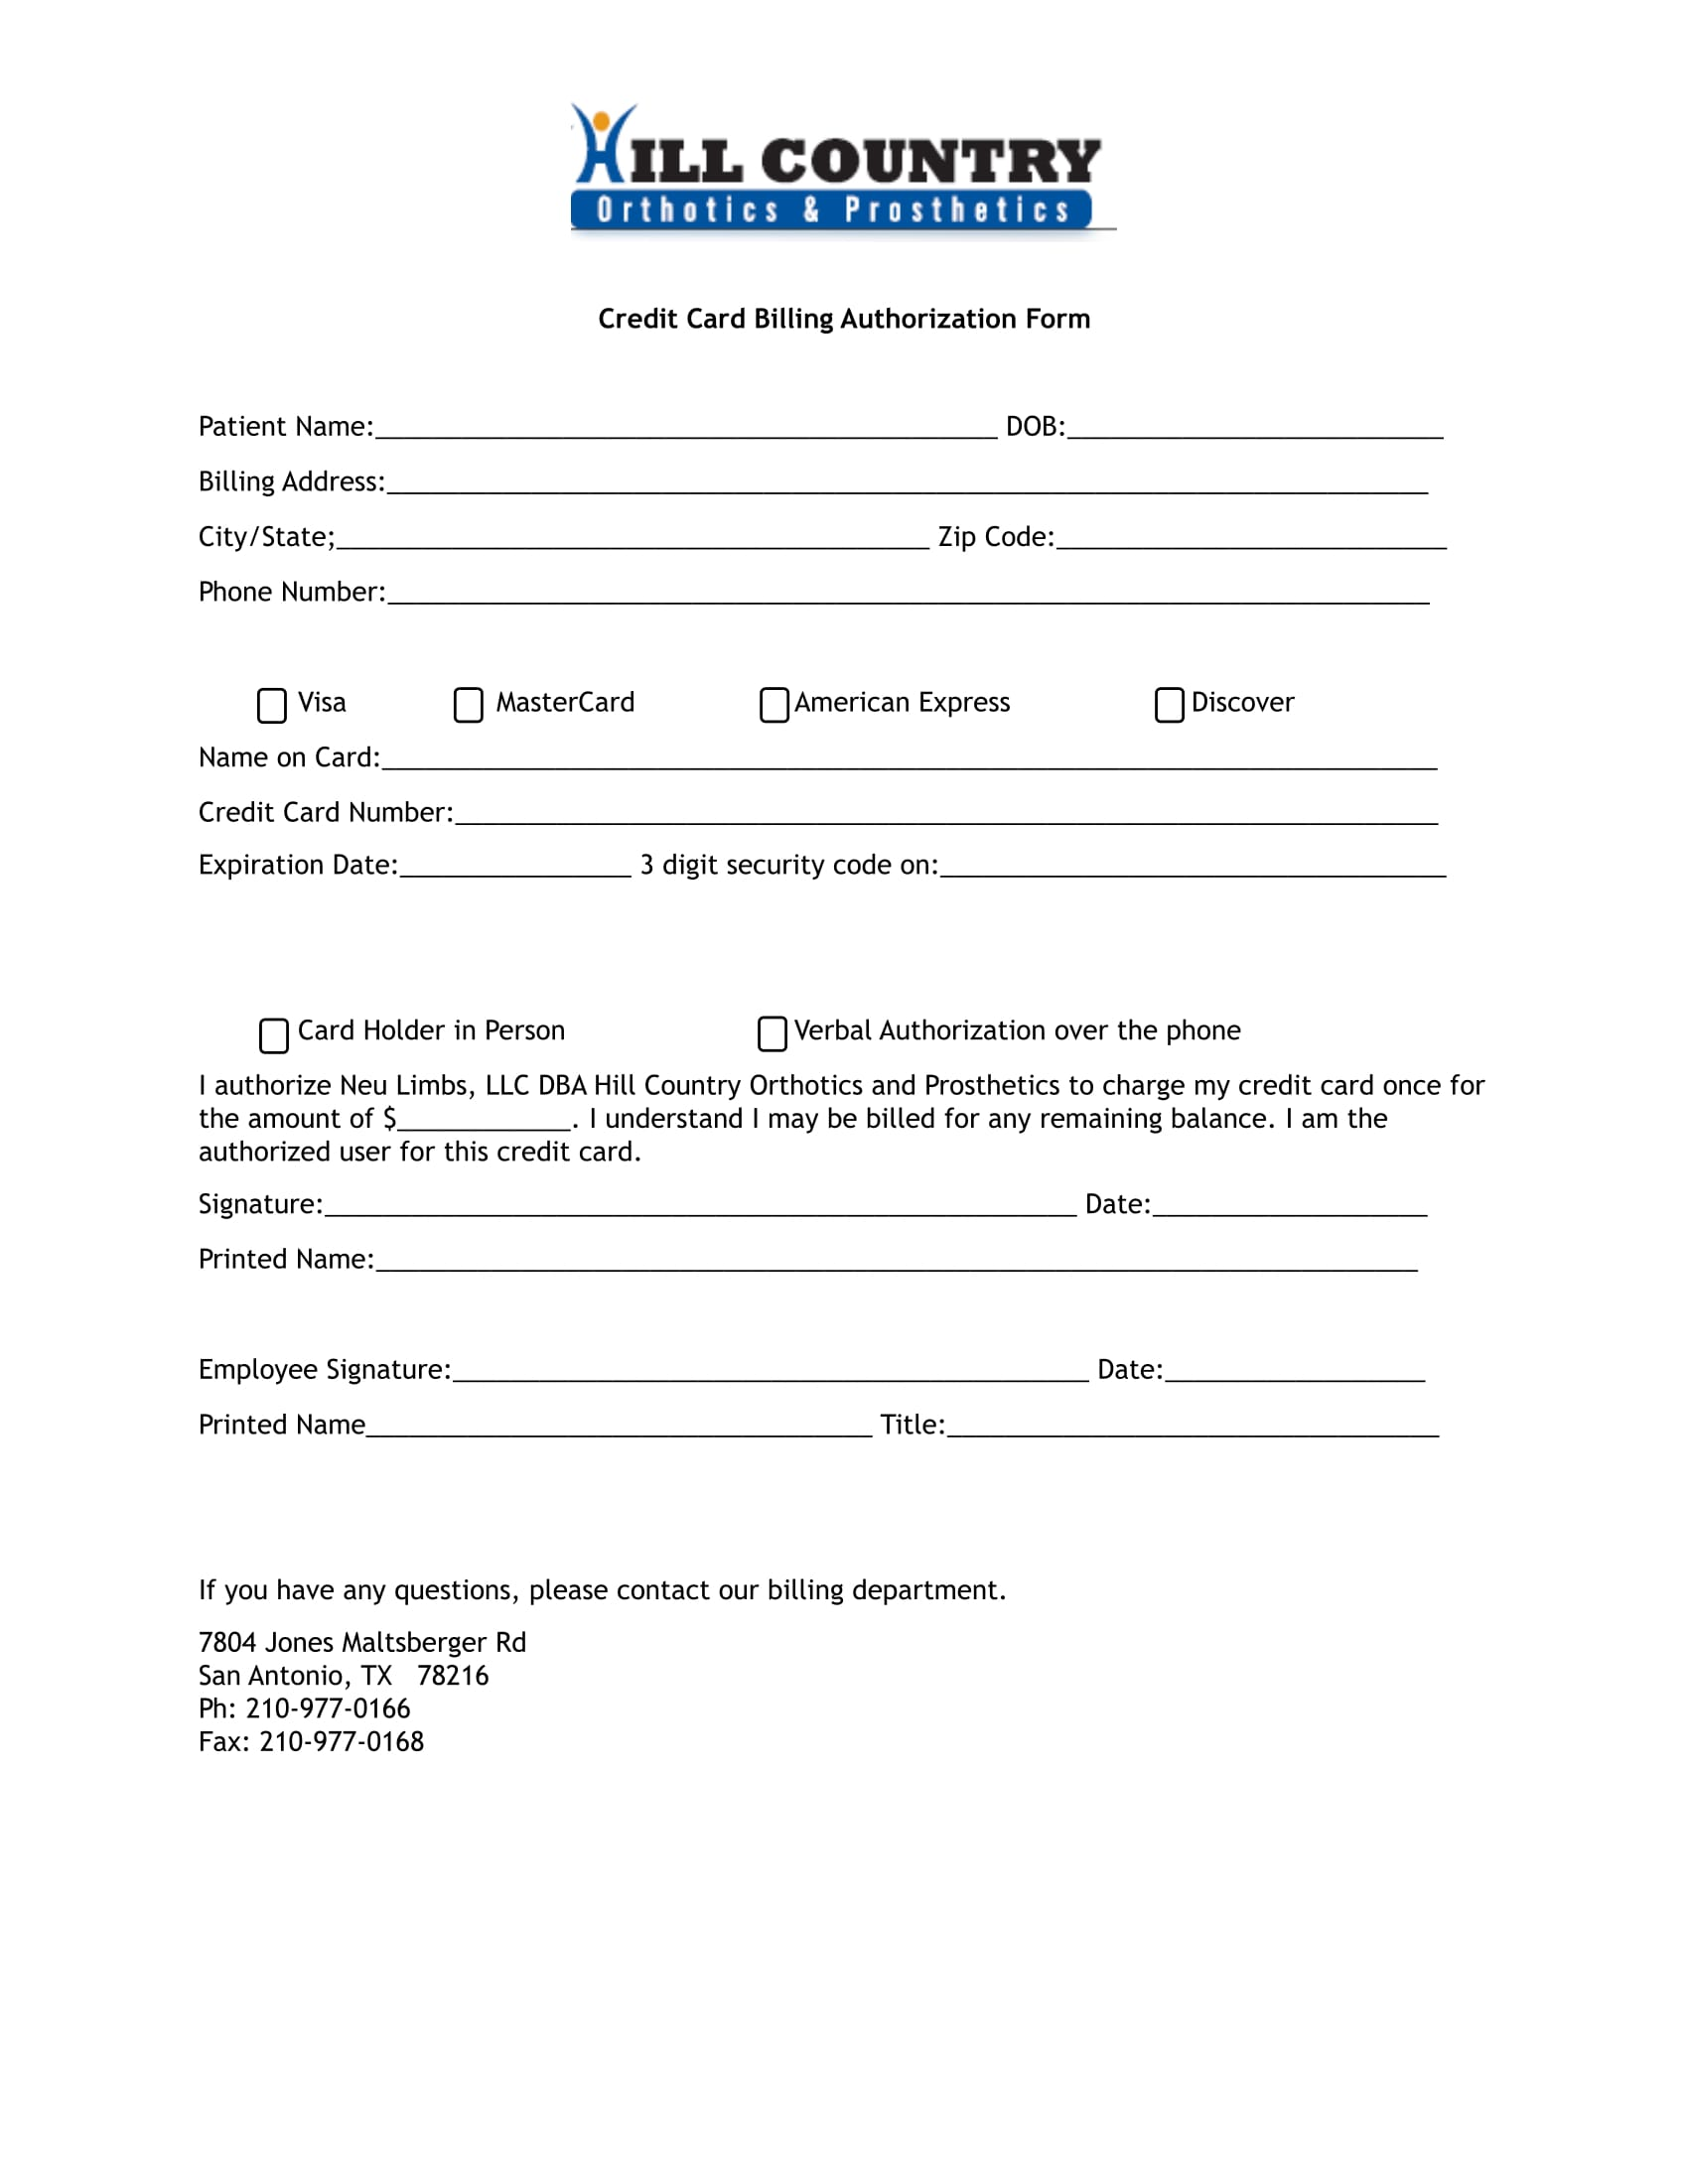 Credit Card Billing Authorization Form  Template amp Sample